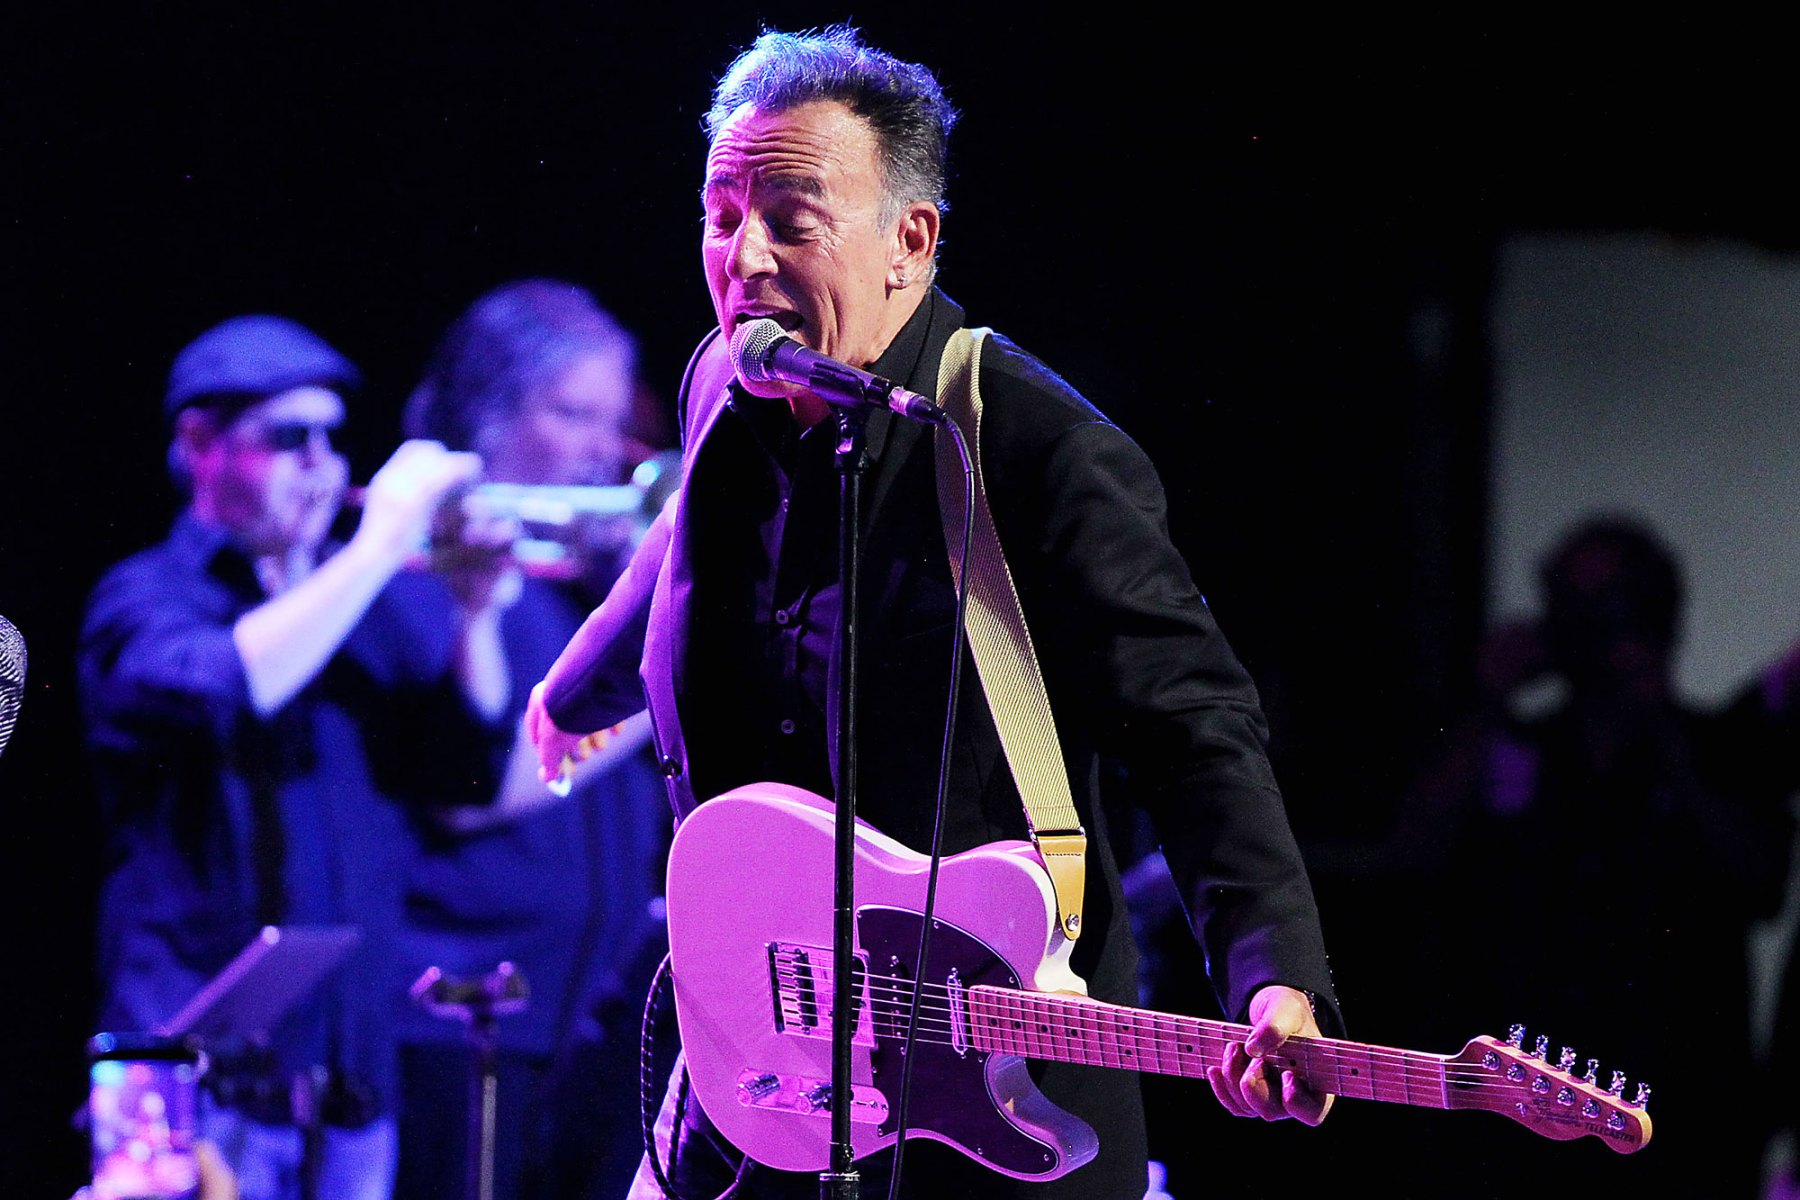 Bruce SpringsteenThe Premiere of New Line Cinemas 'Blinded By The Light' film premiere After Party, New Jersey, USA - 07 Aug 2019